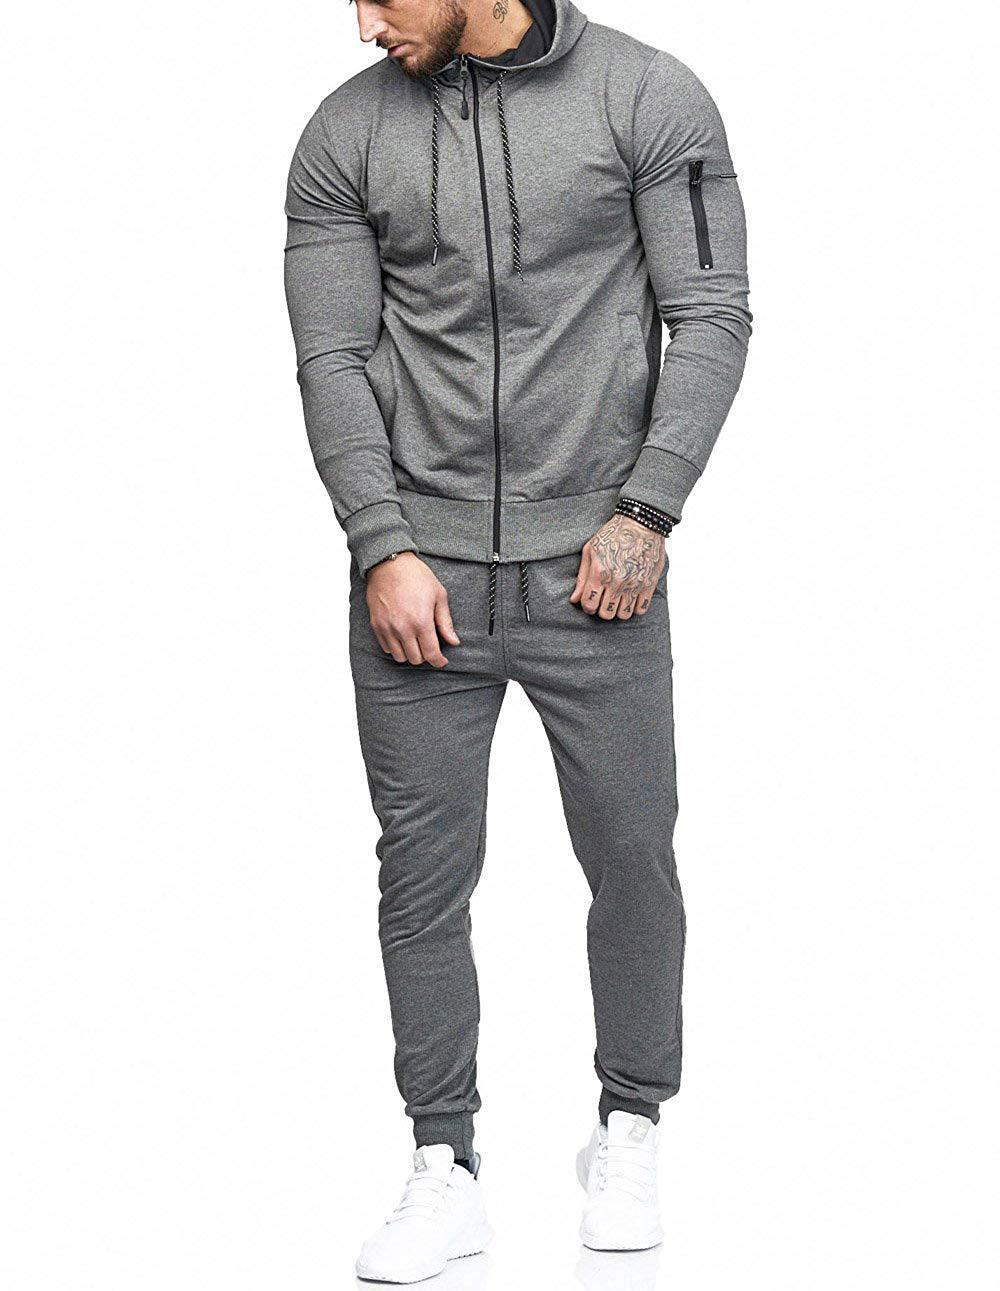 'Men's Sportswear Arm Zipper Decoration For Fitness And Leisure Men Track Suit  Sweatsuits